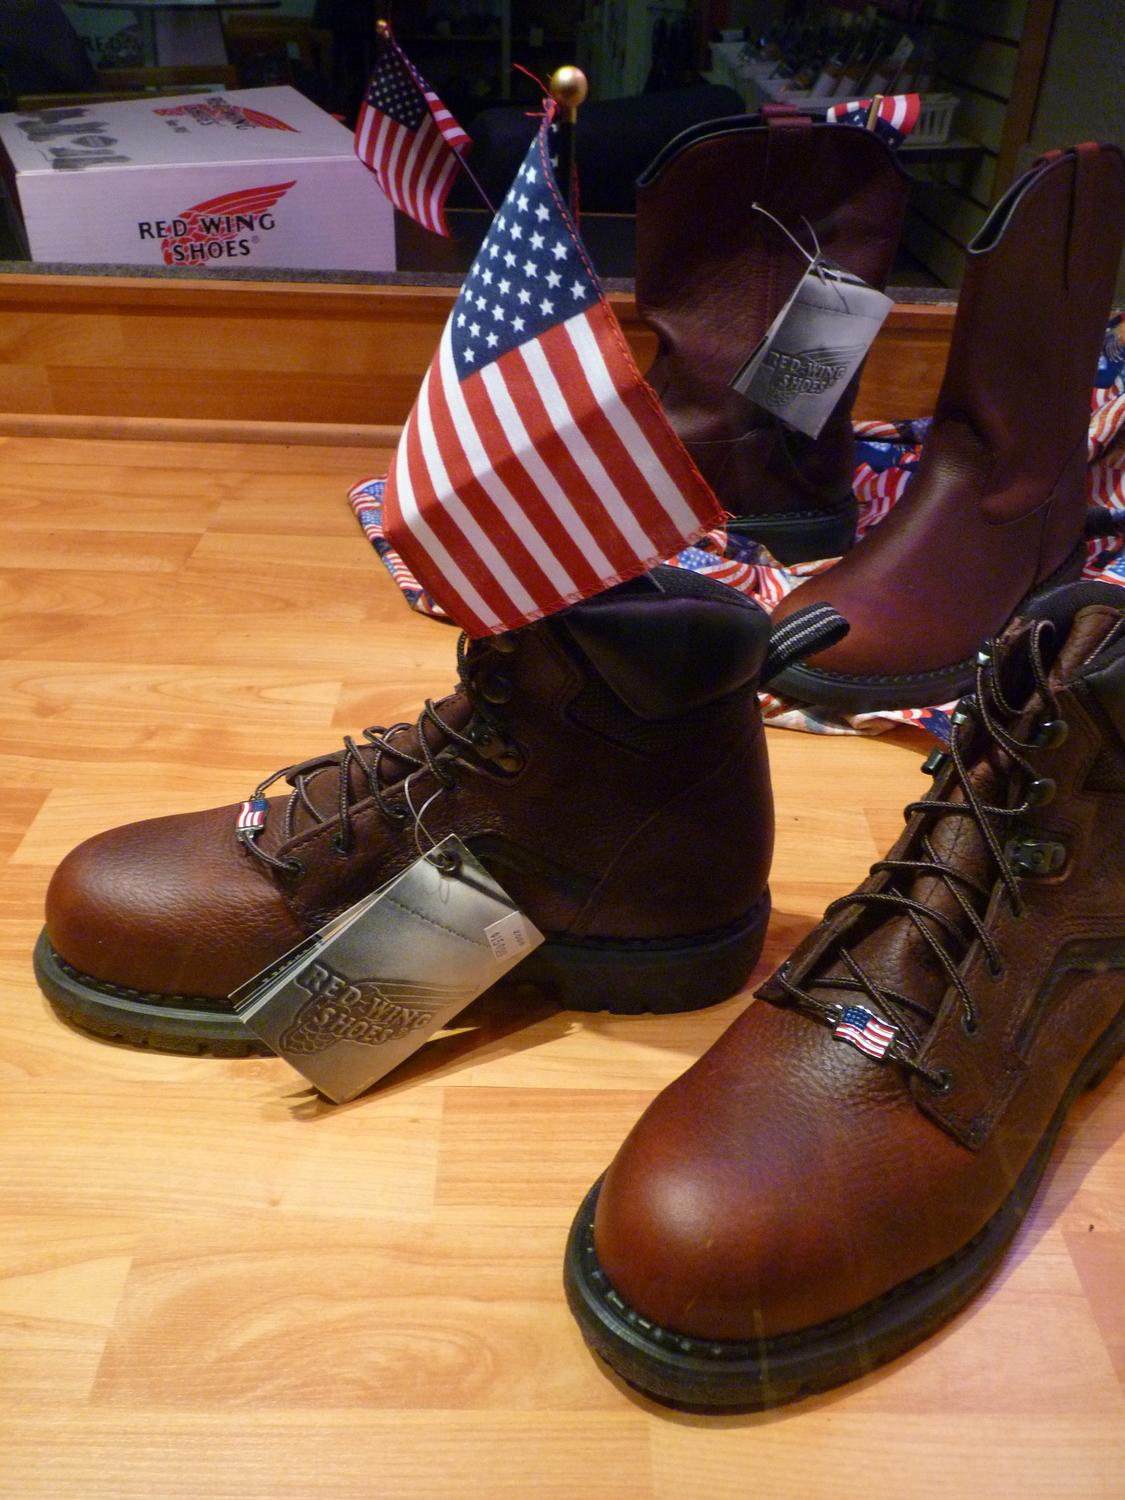 Warrenton - Patriotic, made in America shoes. I wonder where the flags are made. - Panasonic DMC-FZ35 - Tony Karp, design, art, photography, techno-impressionist, techno-impressionism, aerial photography , drone , drones , dji , mavic pro , video , 3D printing - Books -